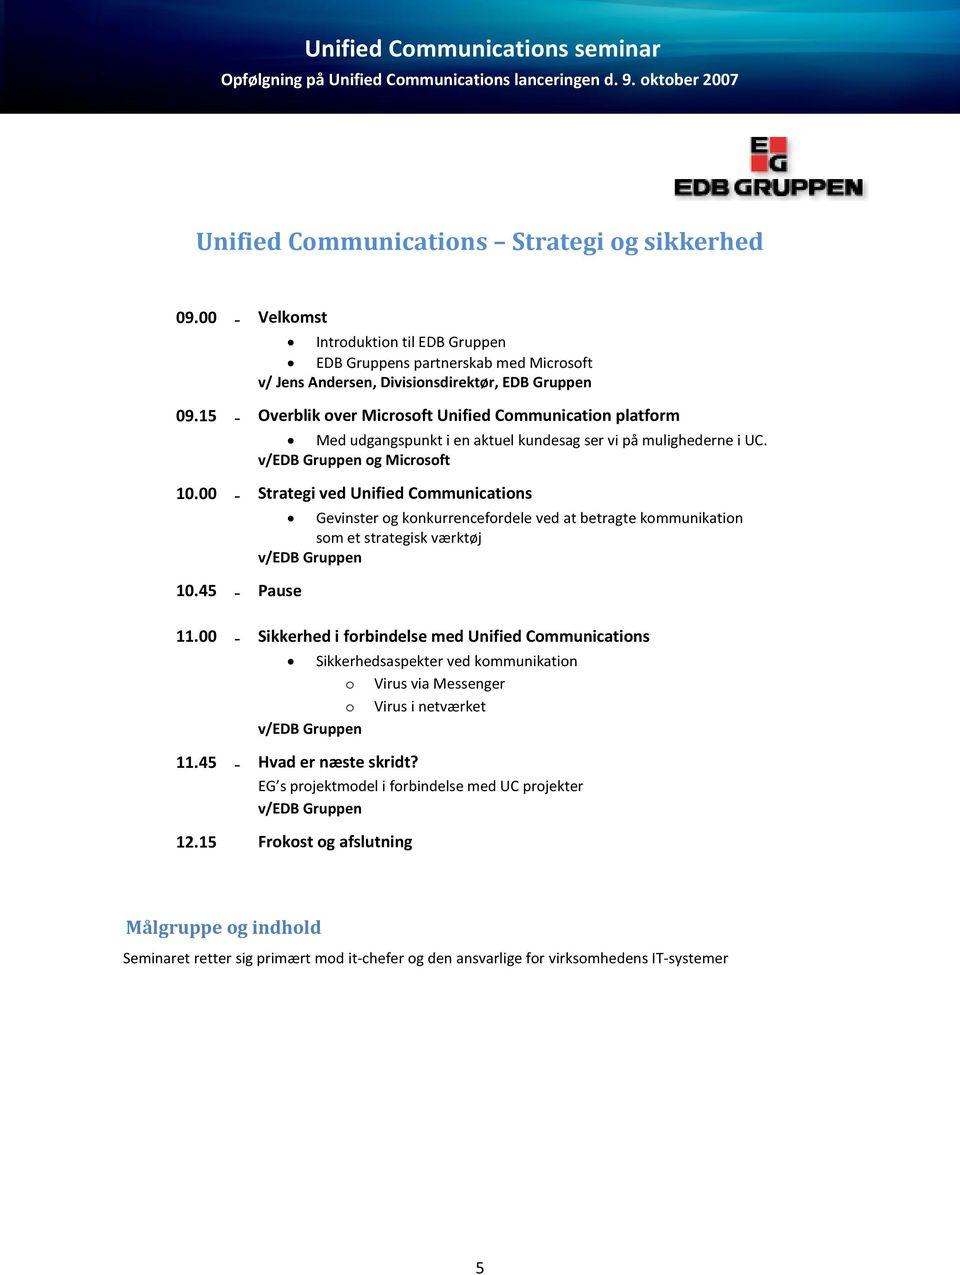 00 - Strategi ved Unified Communications 10.45 - Pause Gevinster og konkurrencefordele ved at betragte kommunikation som et strategisk værktøj v/edb Gruppen 11.